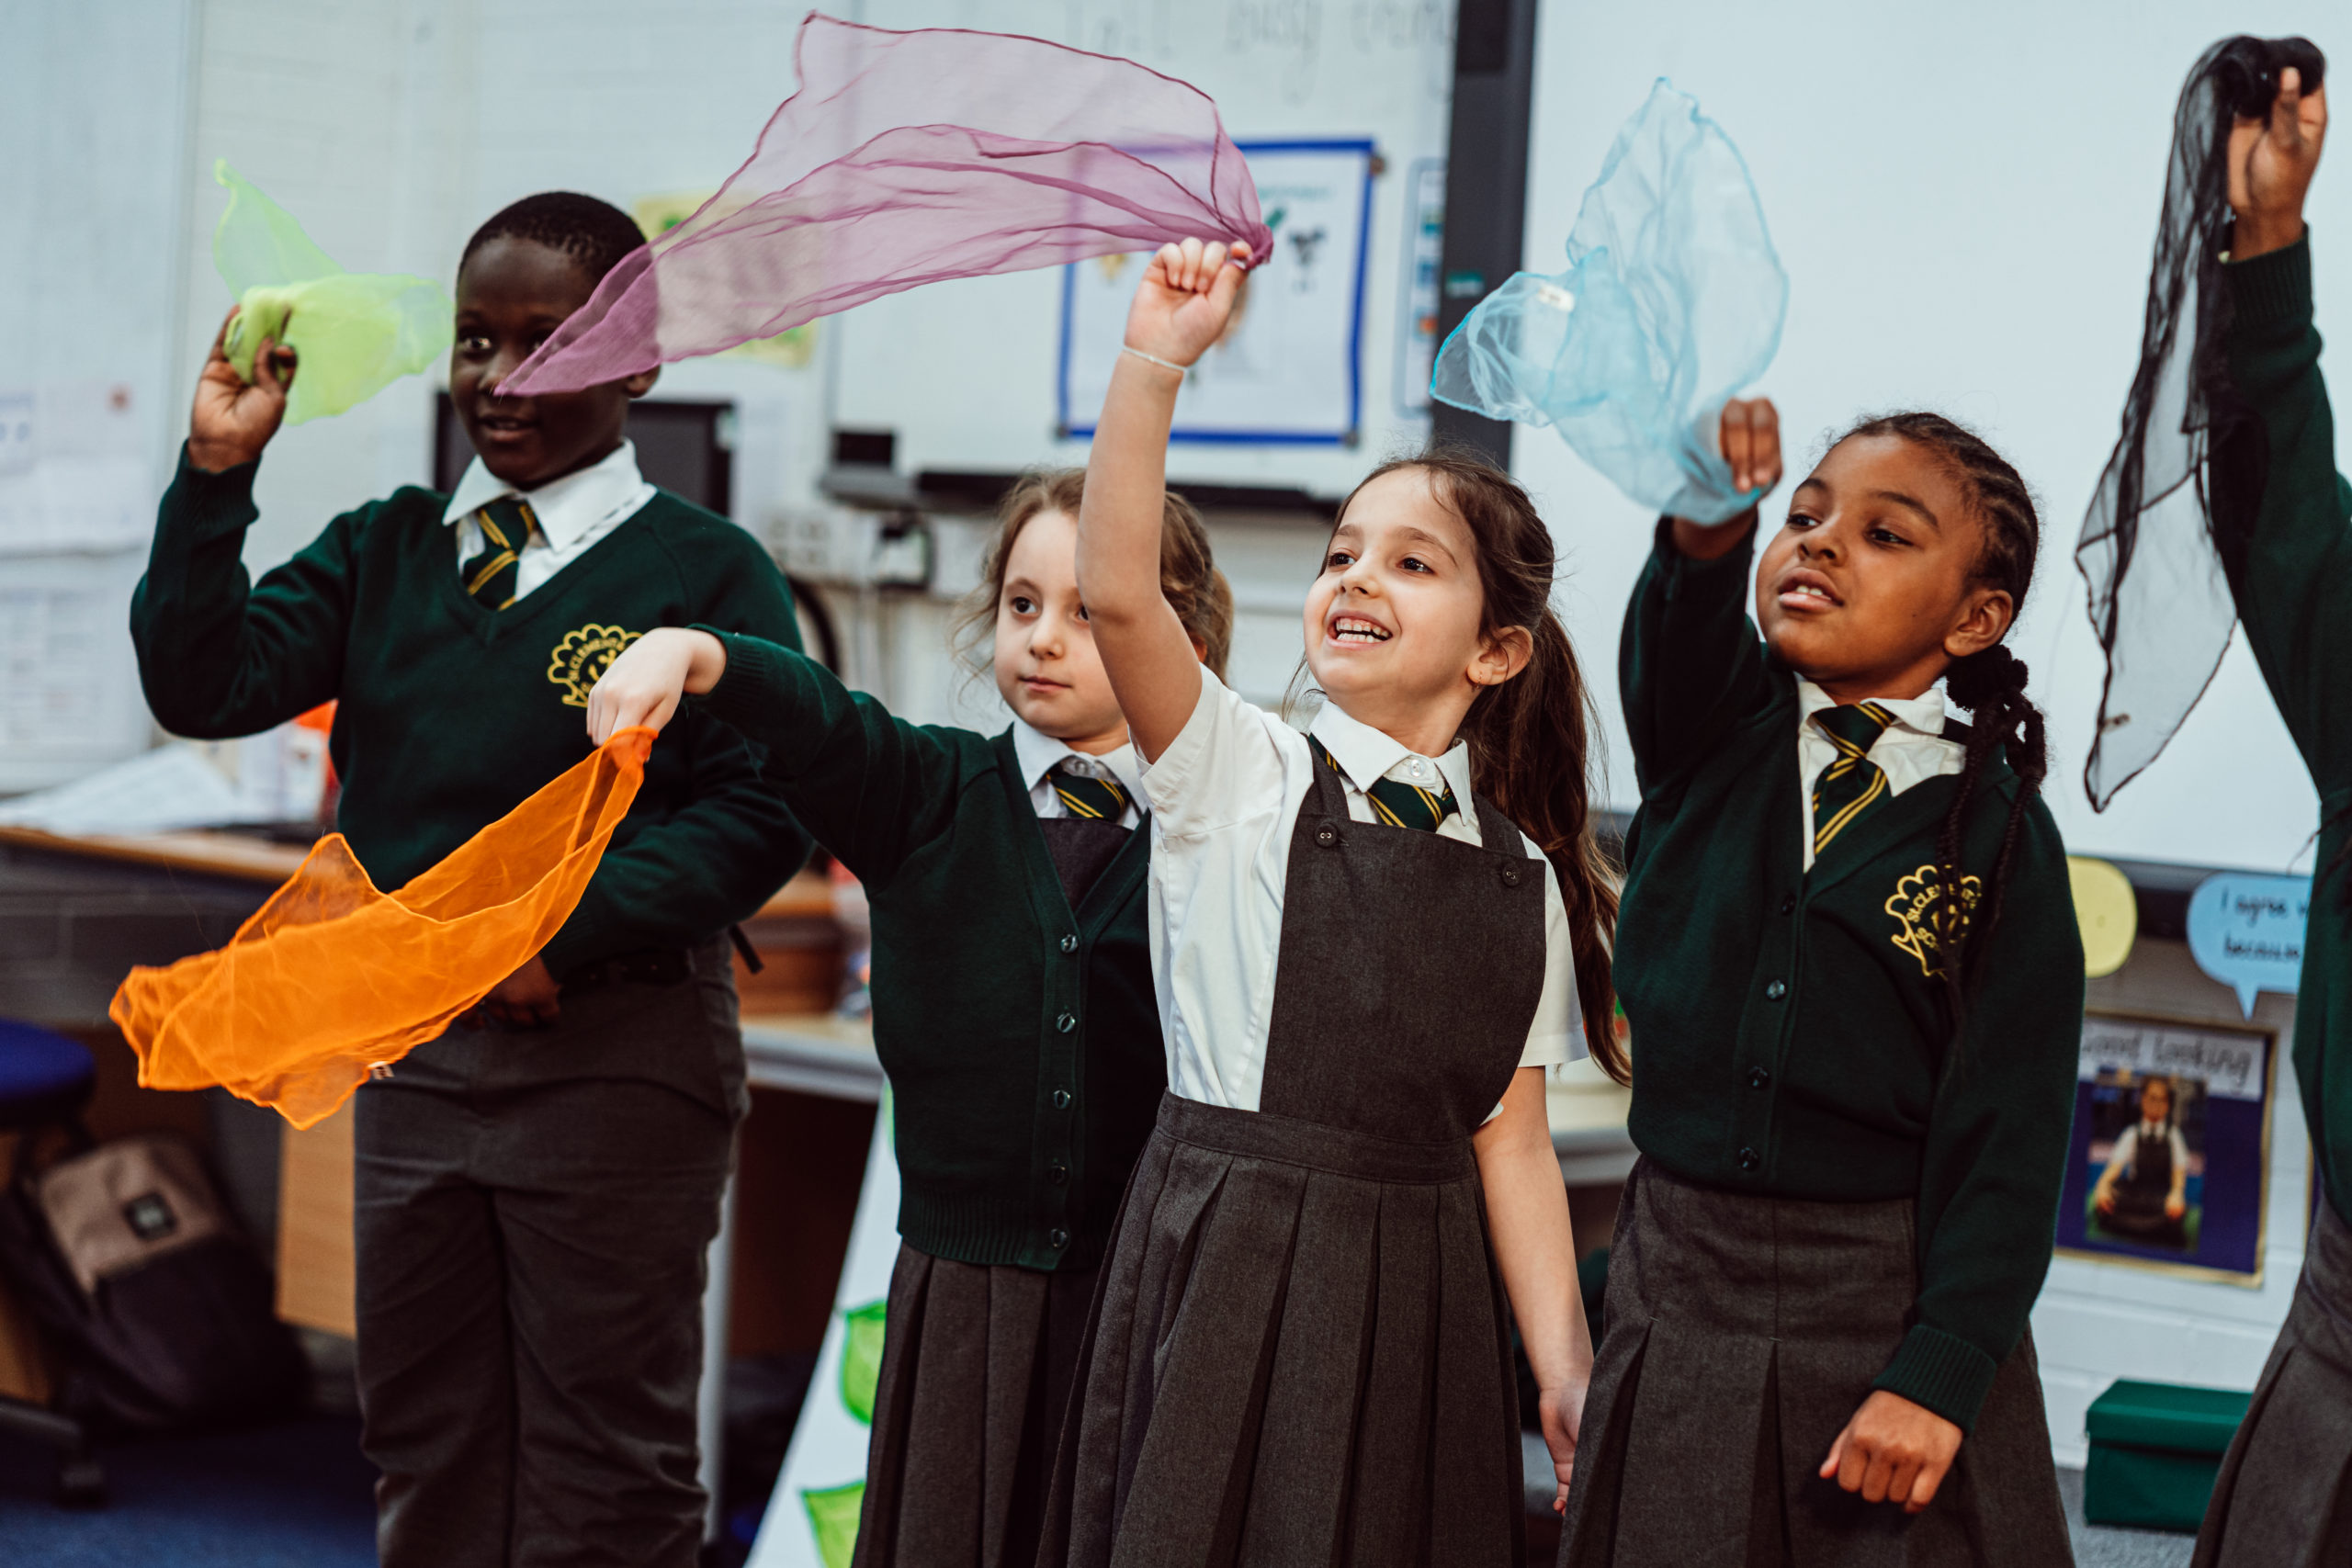 Five KS1 primary pupils, standing, waving a blue, pink, orange, black, yellow scarves in the air, smiling.